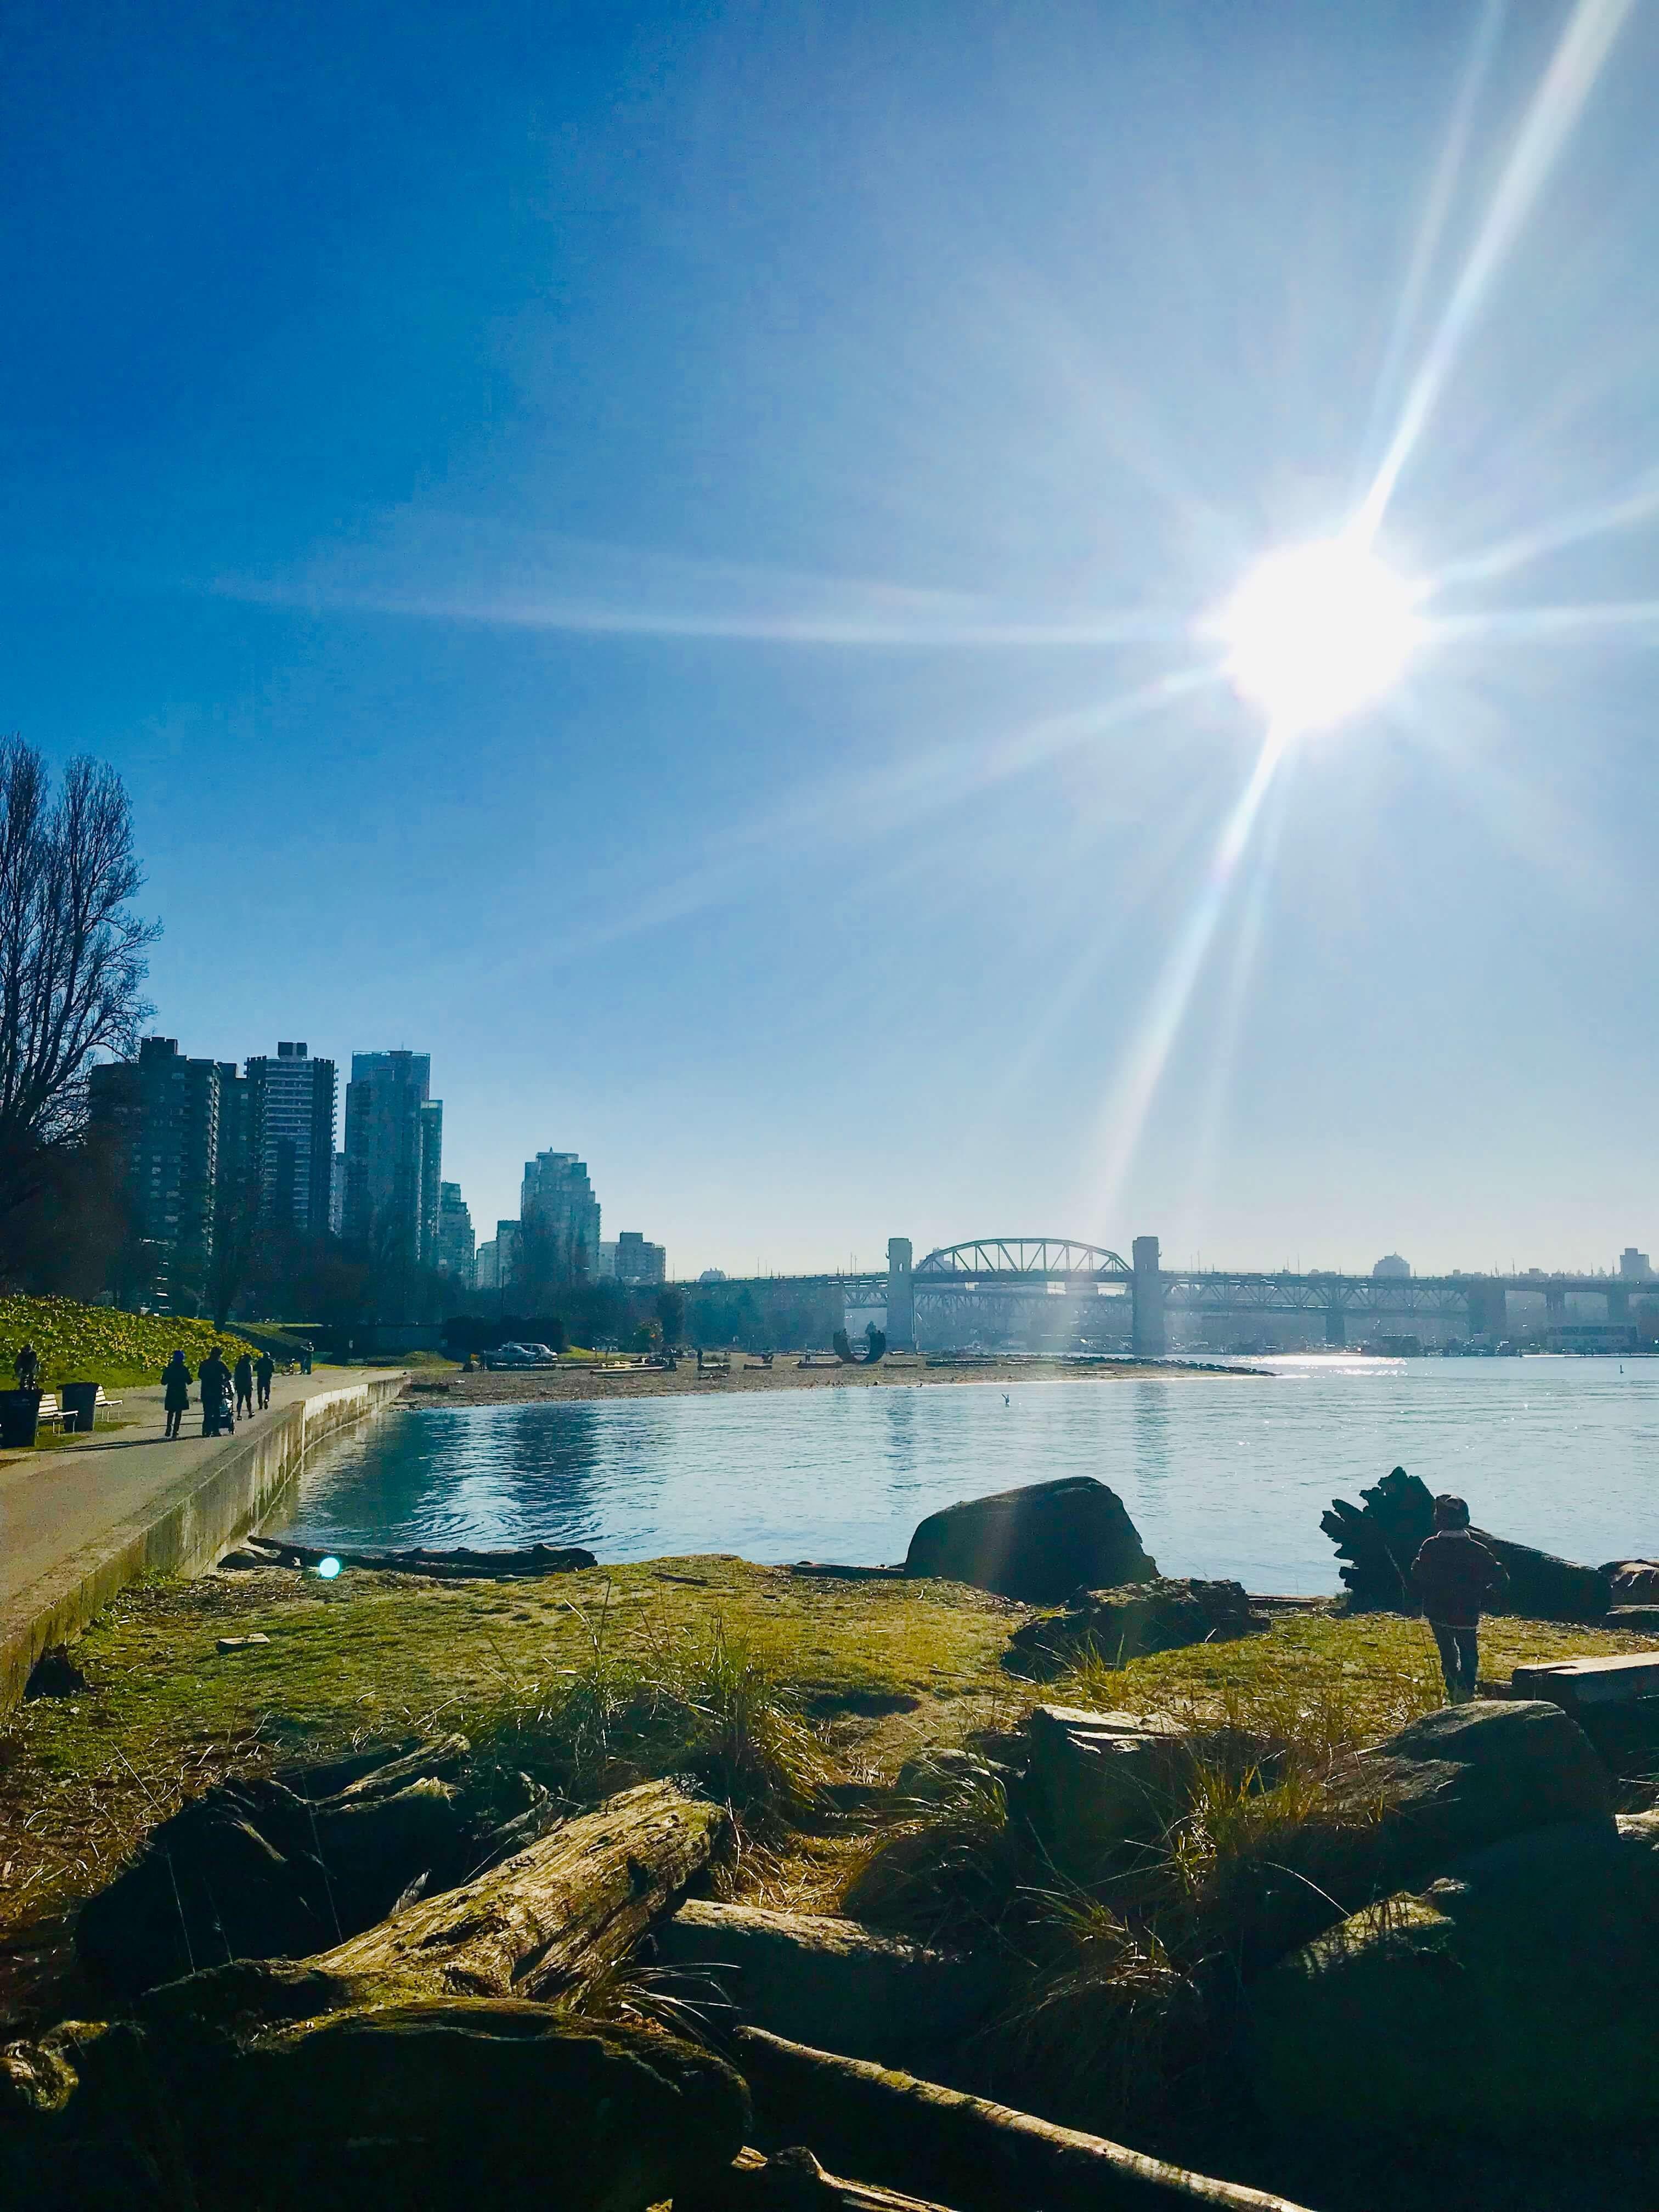 Things I Still Need To Do In Vancouver